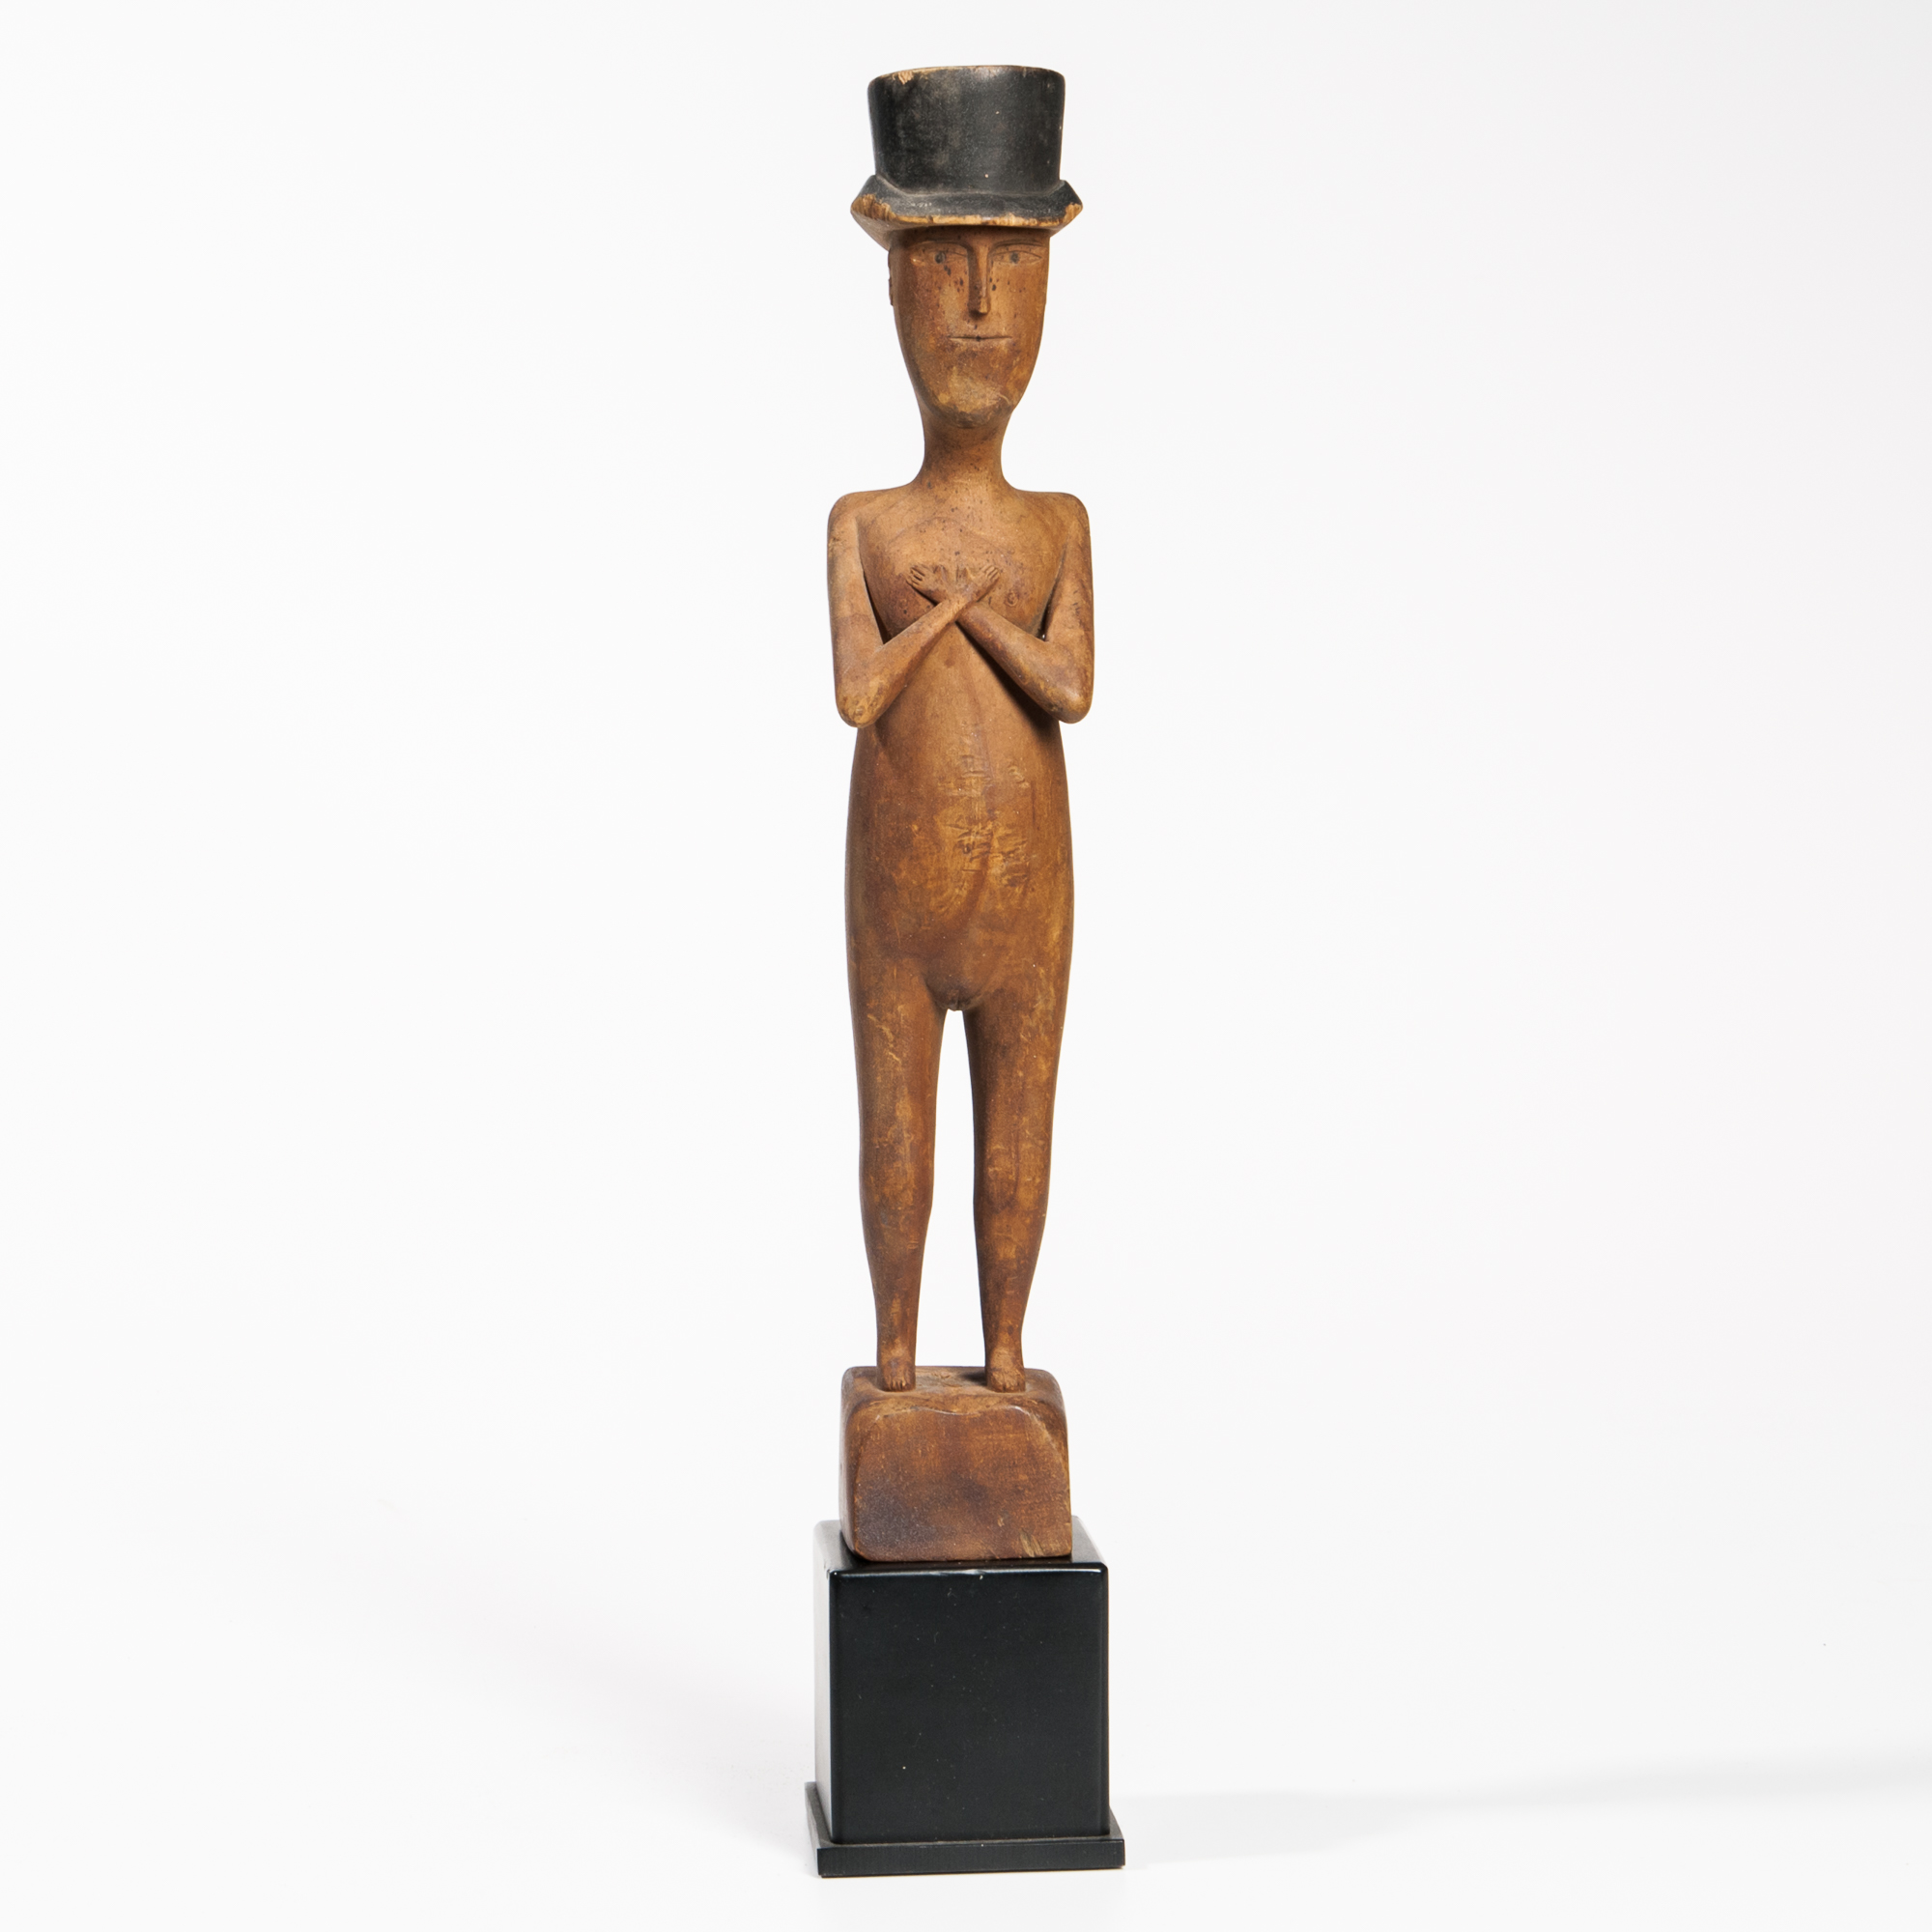 Carved Androgynous Figure in a Top Hat, America, c. 1869-70 (Lot 9, Estimate: $8,000-12,000)